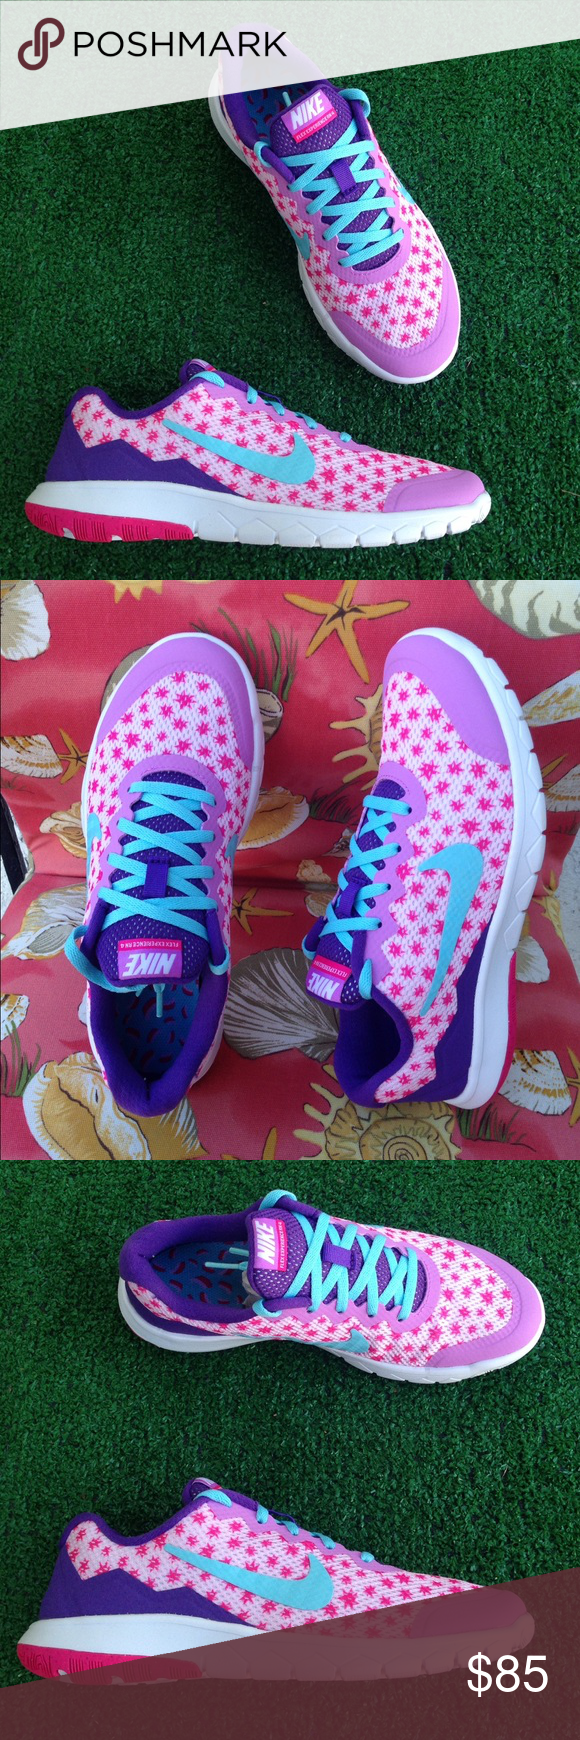 Women's Nike flex experience 4 print sneakers •Brand new •Authentic •Box not included ***CHEAPER THROUGH ♏️*****///Size 5Y or 6.5 or 23cm/// Size 5.5Y or 7 or 24cm/// Size 6Y or 7.5 or 24.5cm Nike Shoes Athletic Shoes